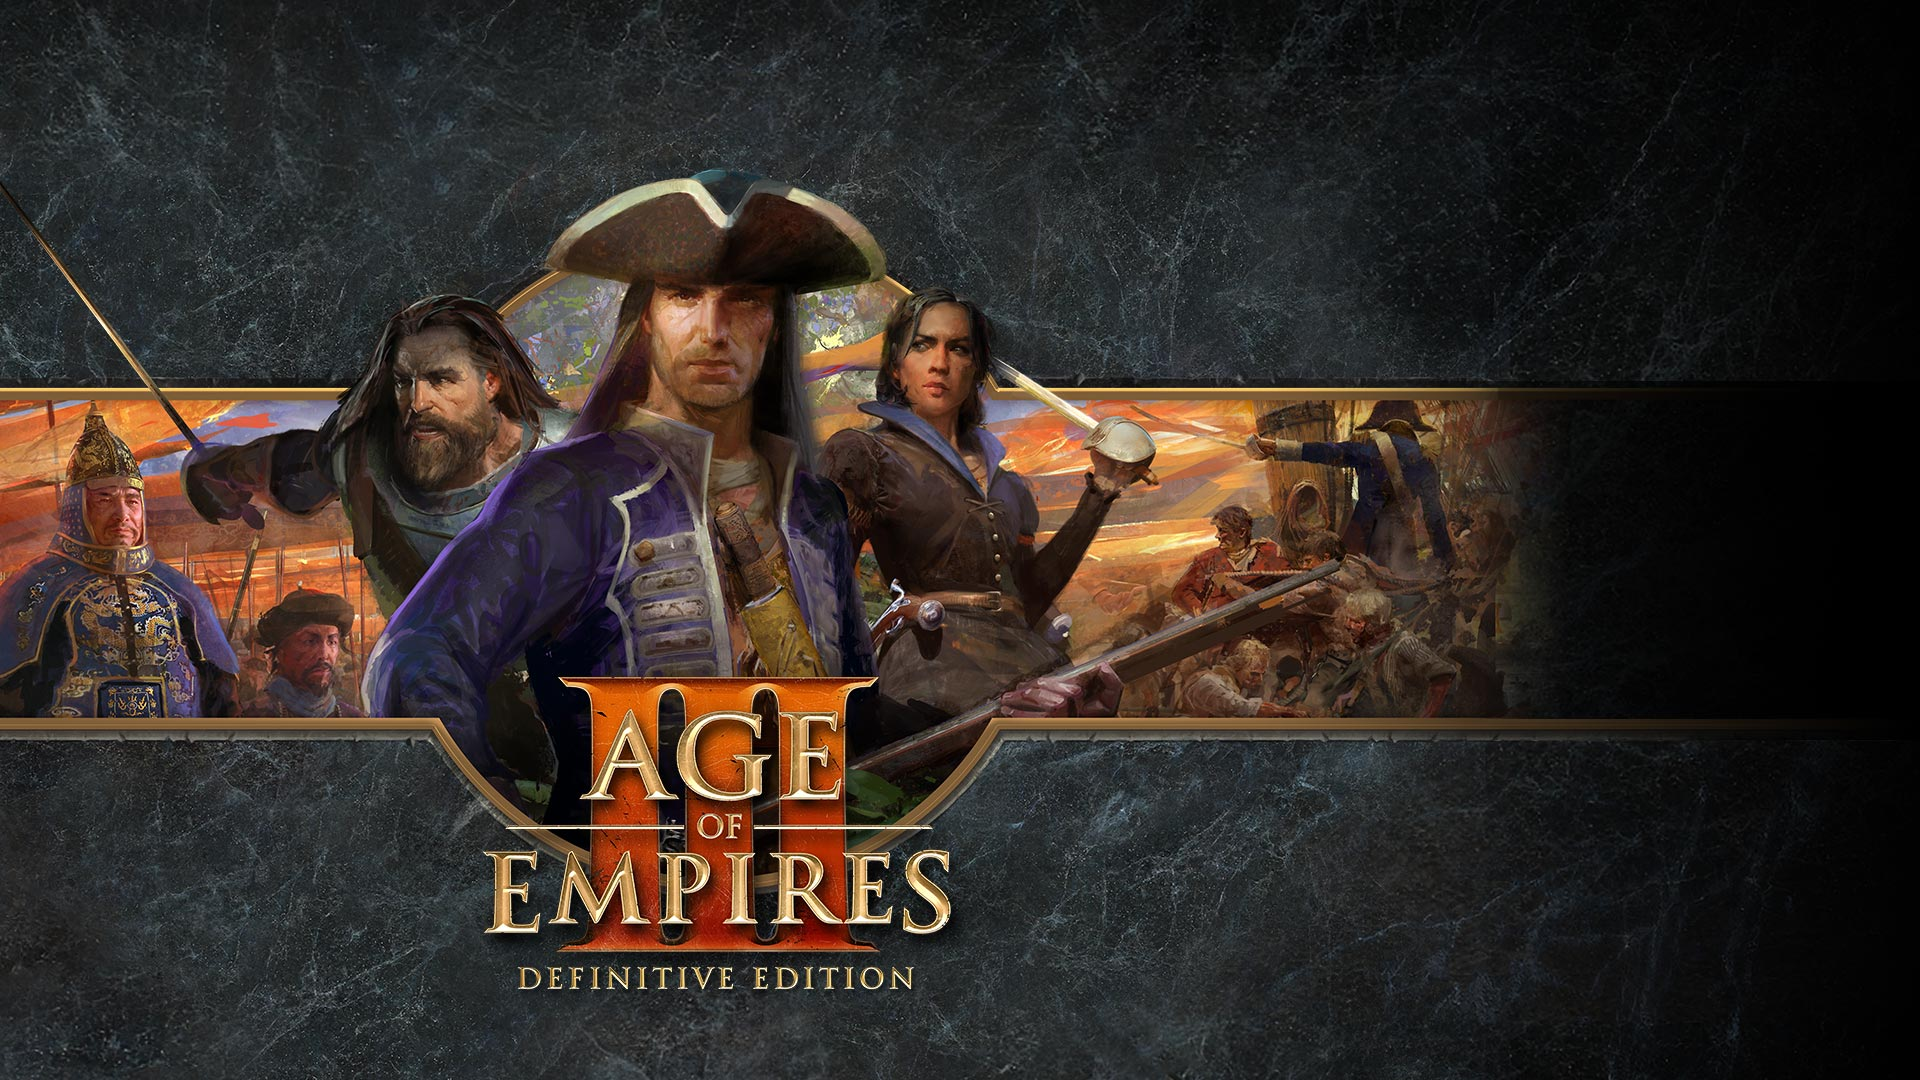 Age of Empires III: Definitive Edition, posierende Charaktere